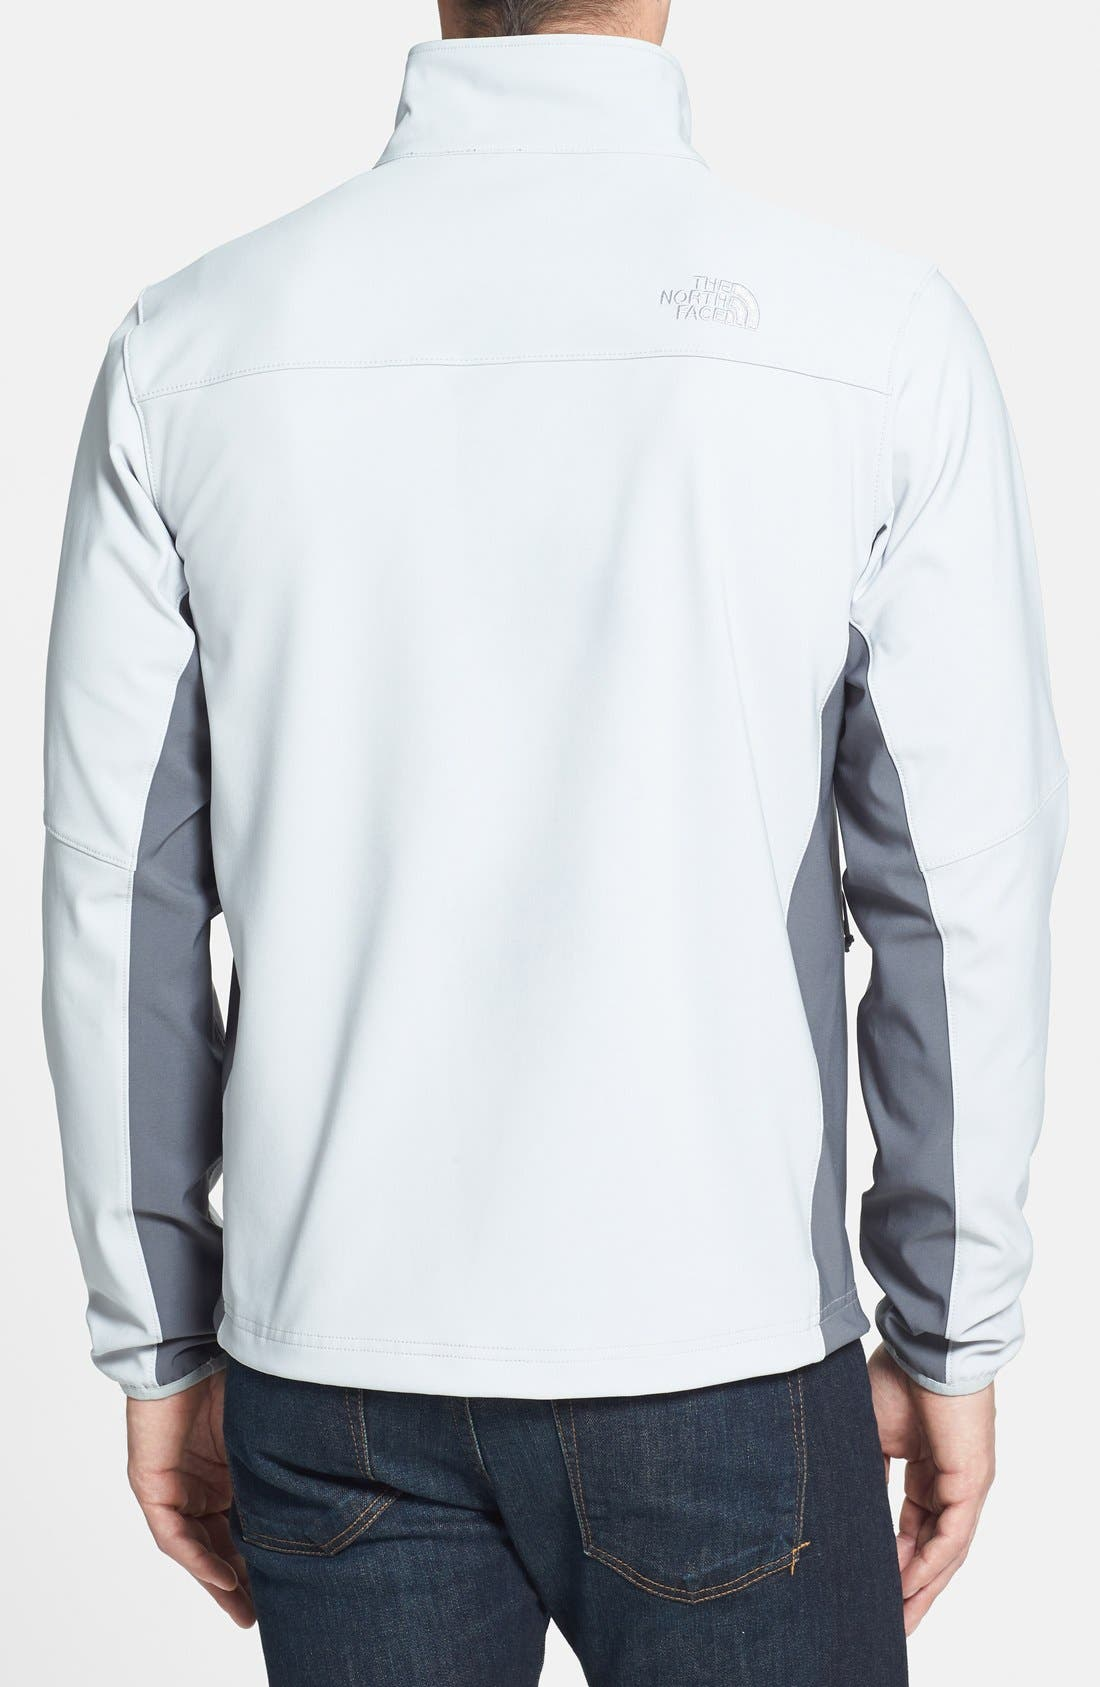 Alternate Image 2  - The North Face 'Apex Pneumatic' Jacket